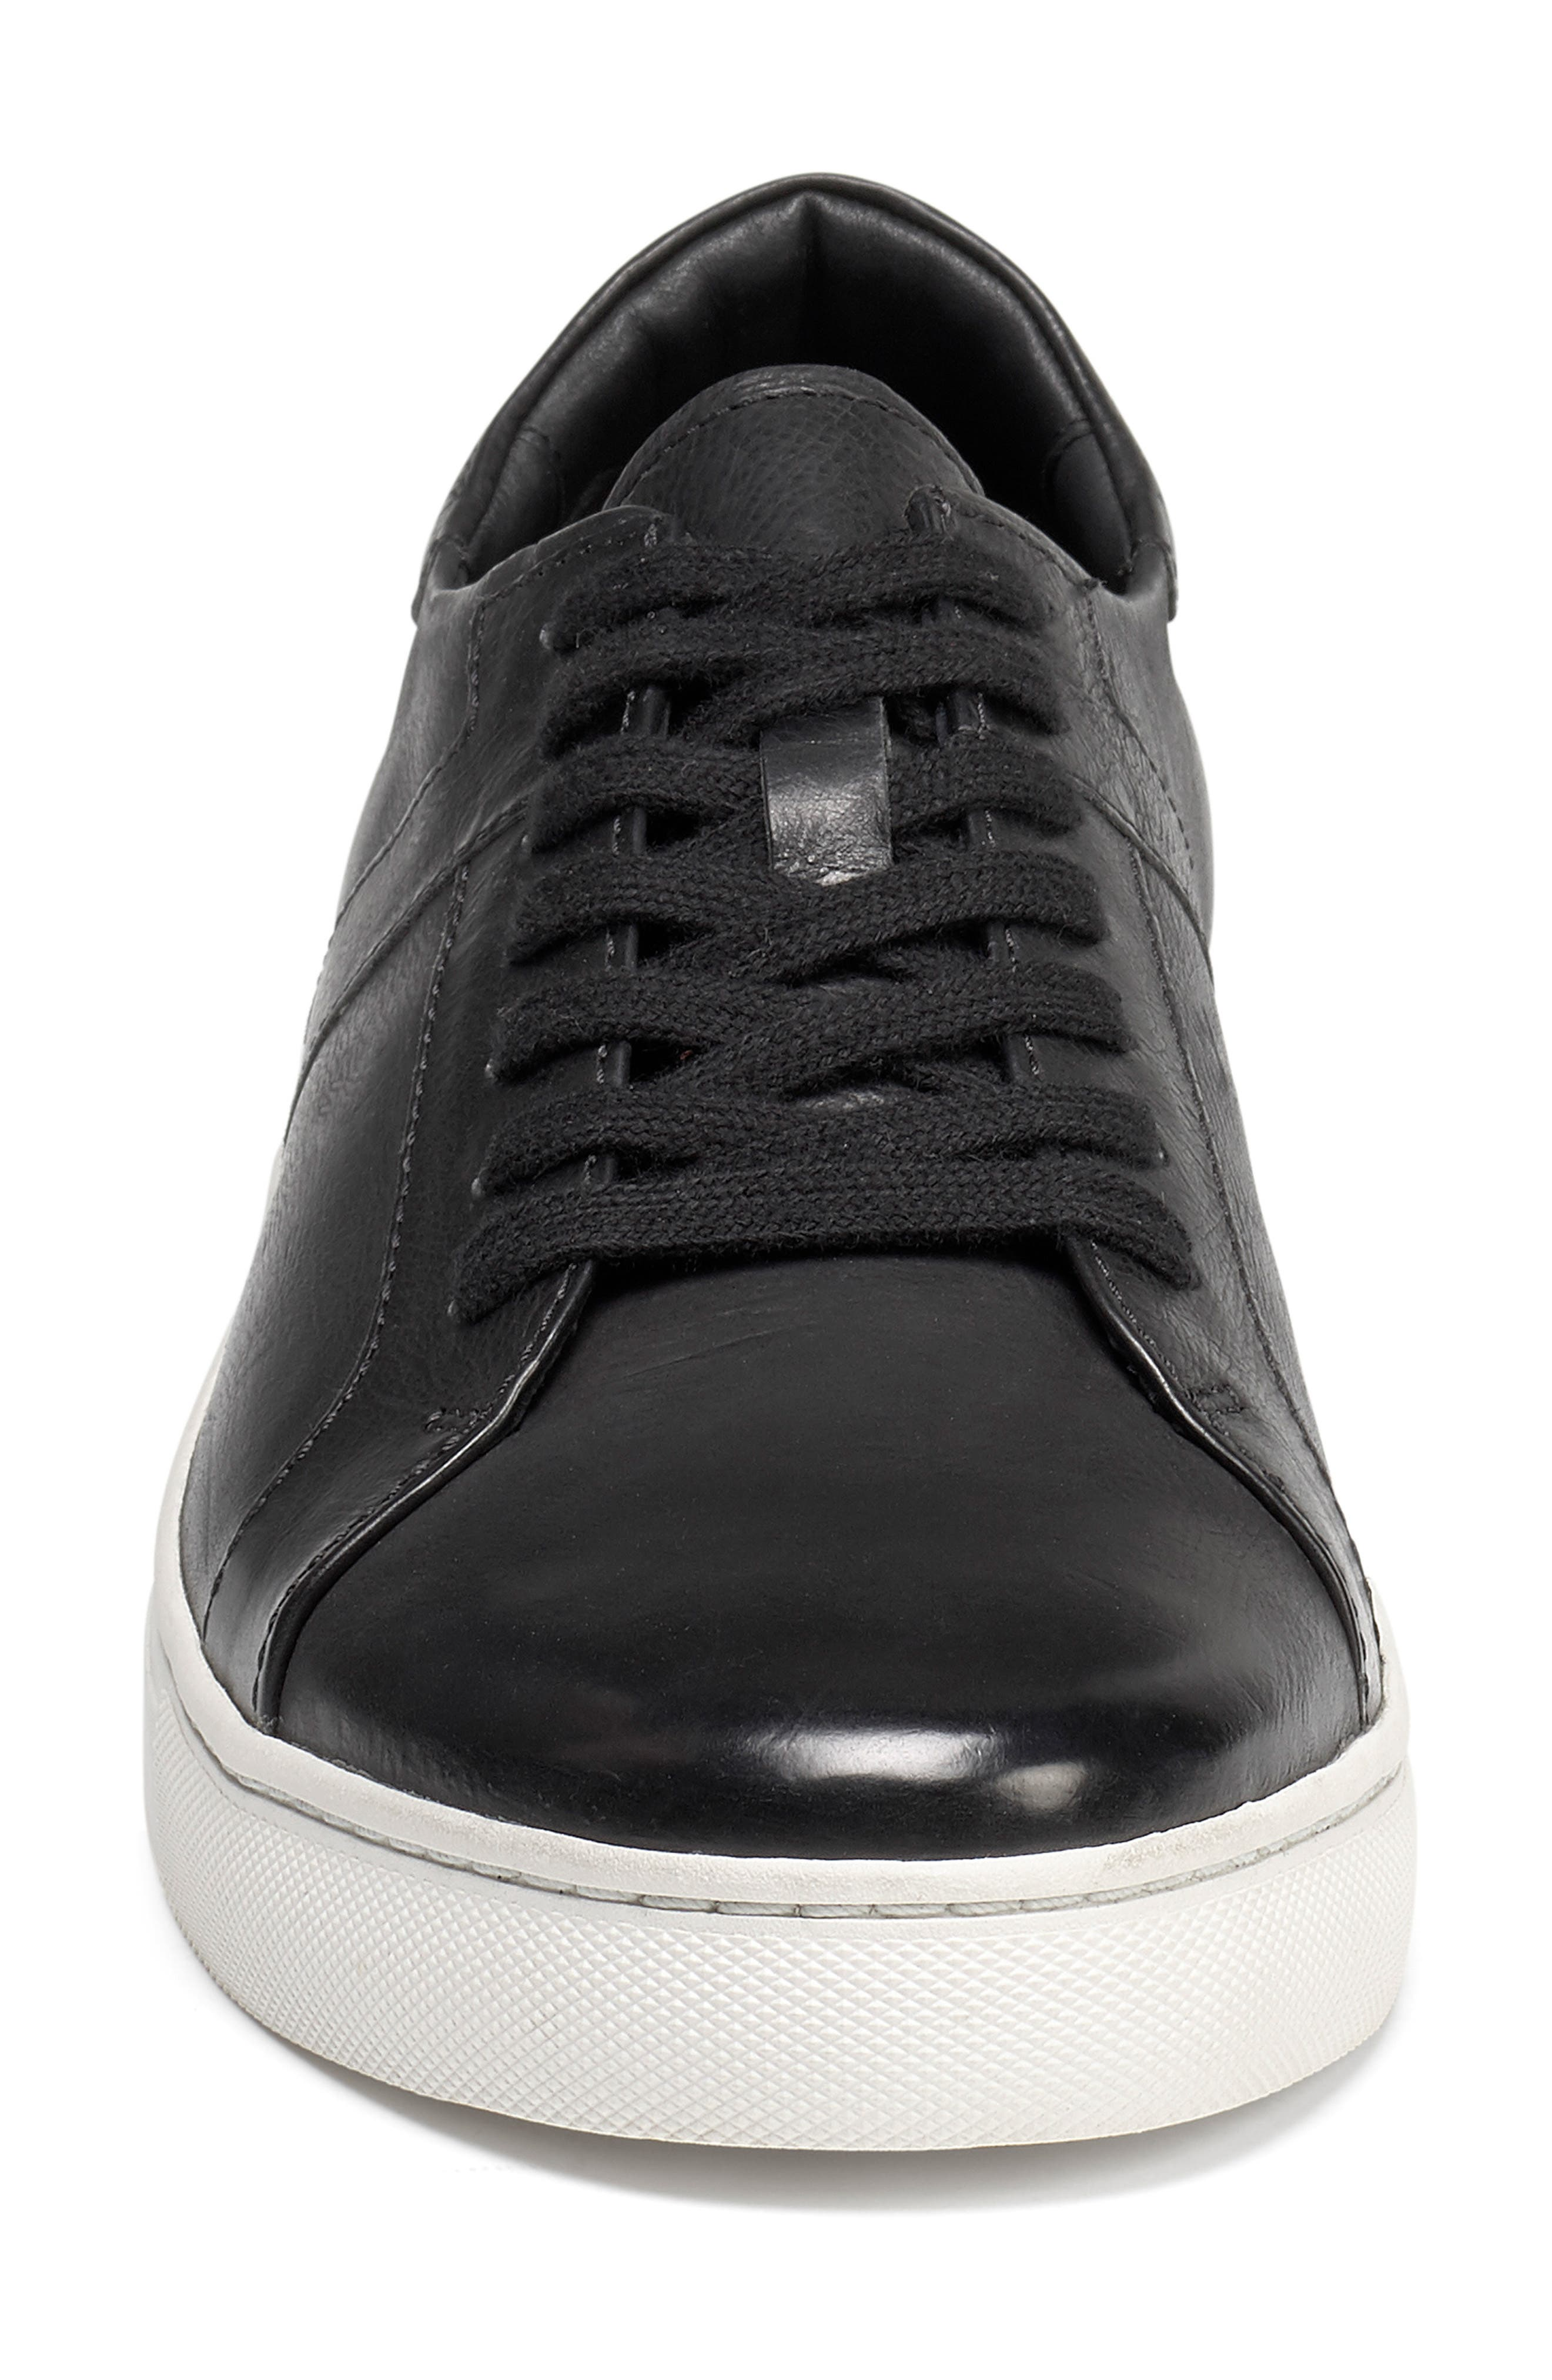 Aaron Sneaker,                             Alternate thumbnail 4, color,                             BLACK LEATHER